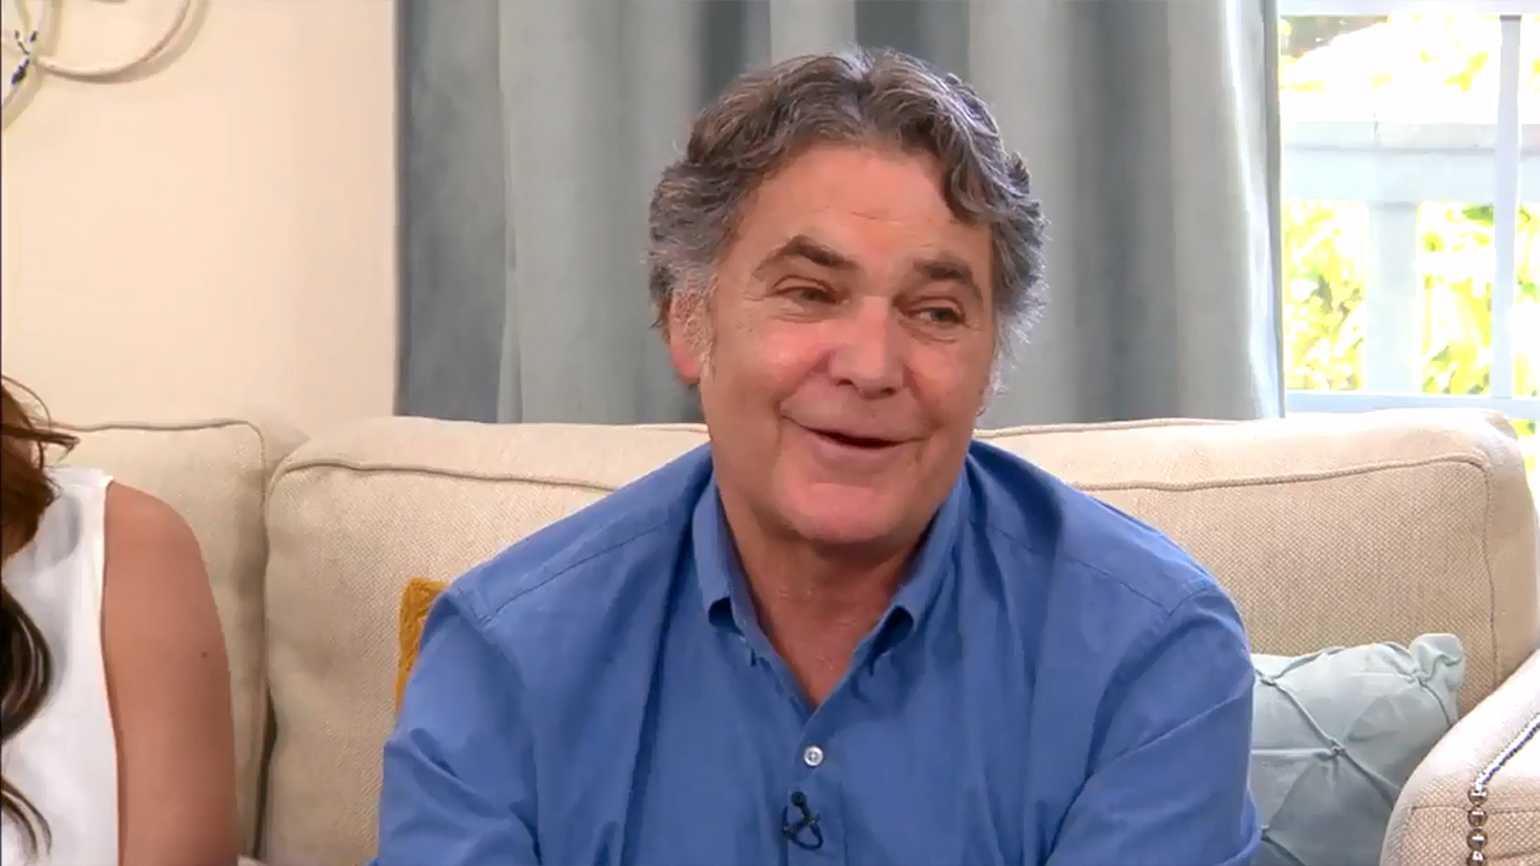 Edward Grinnan discusses his book, Always by My Side, on the Hallmark Channel's Home and Family